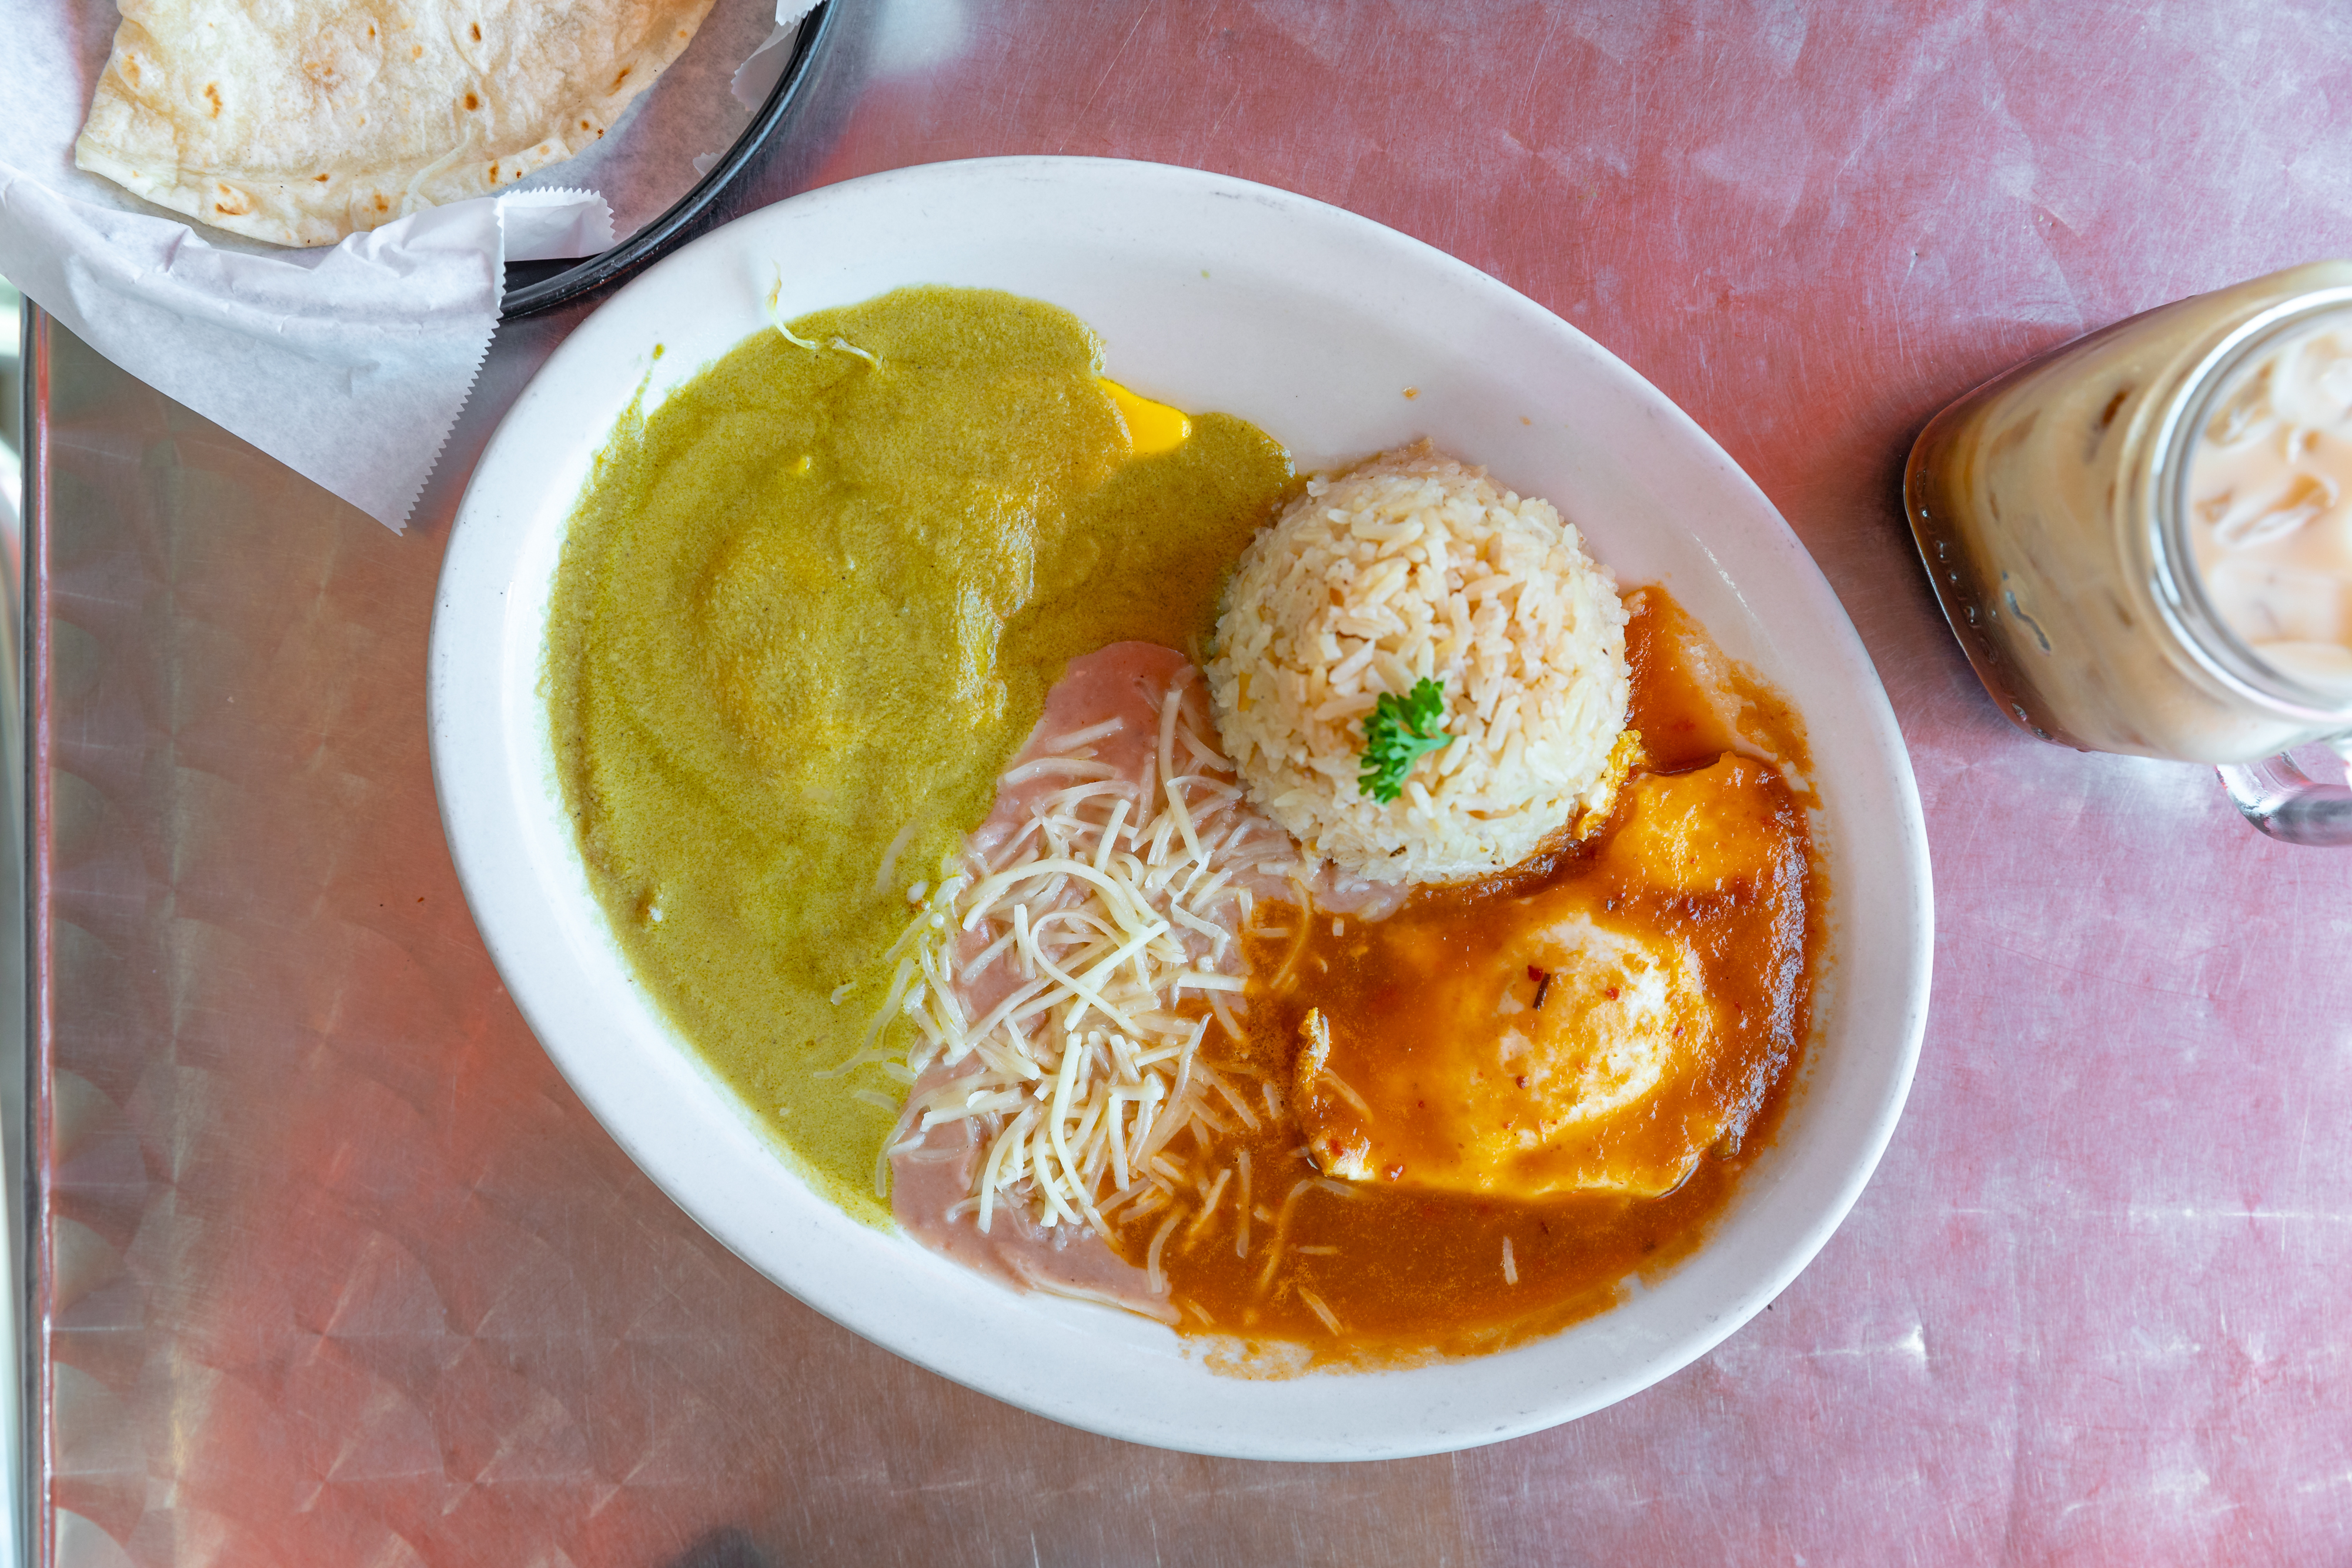 Where To Eat In Burbank Burbank Los Angeles The